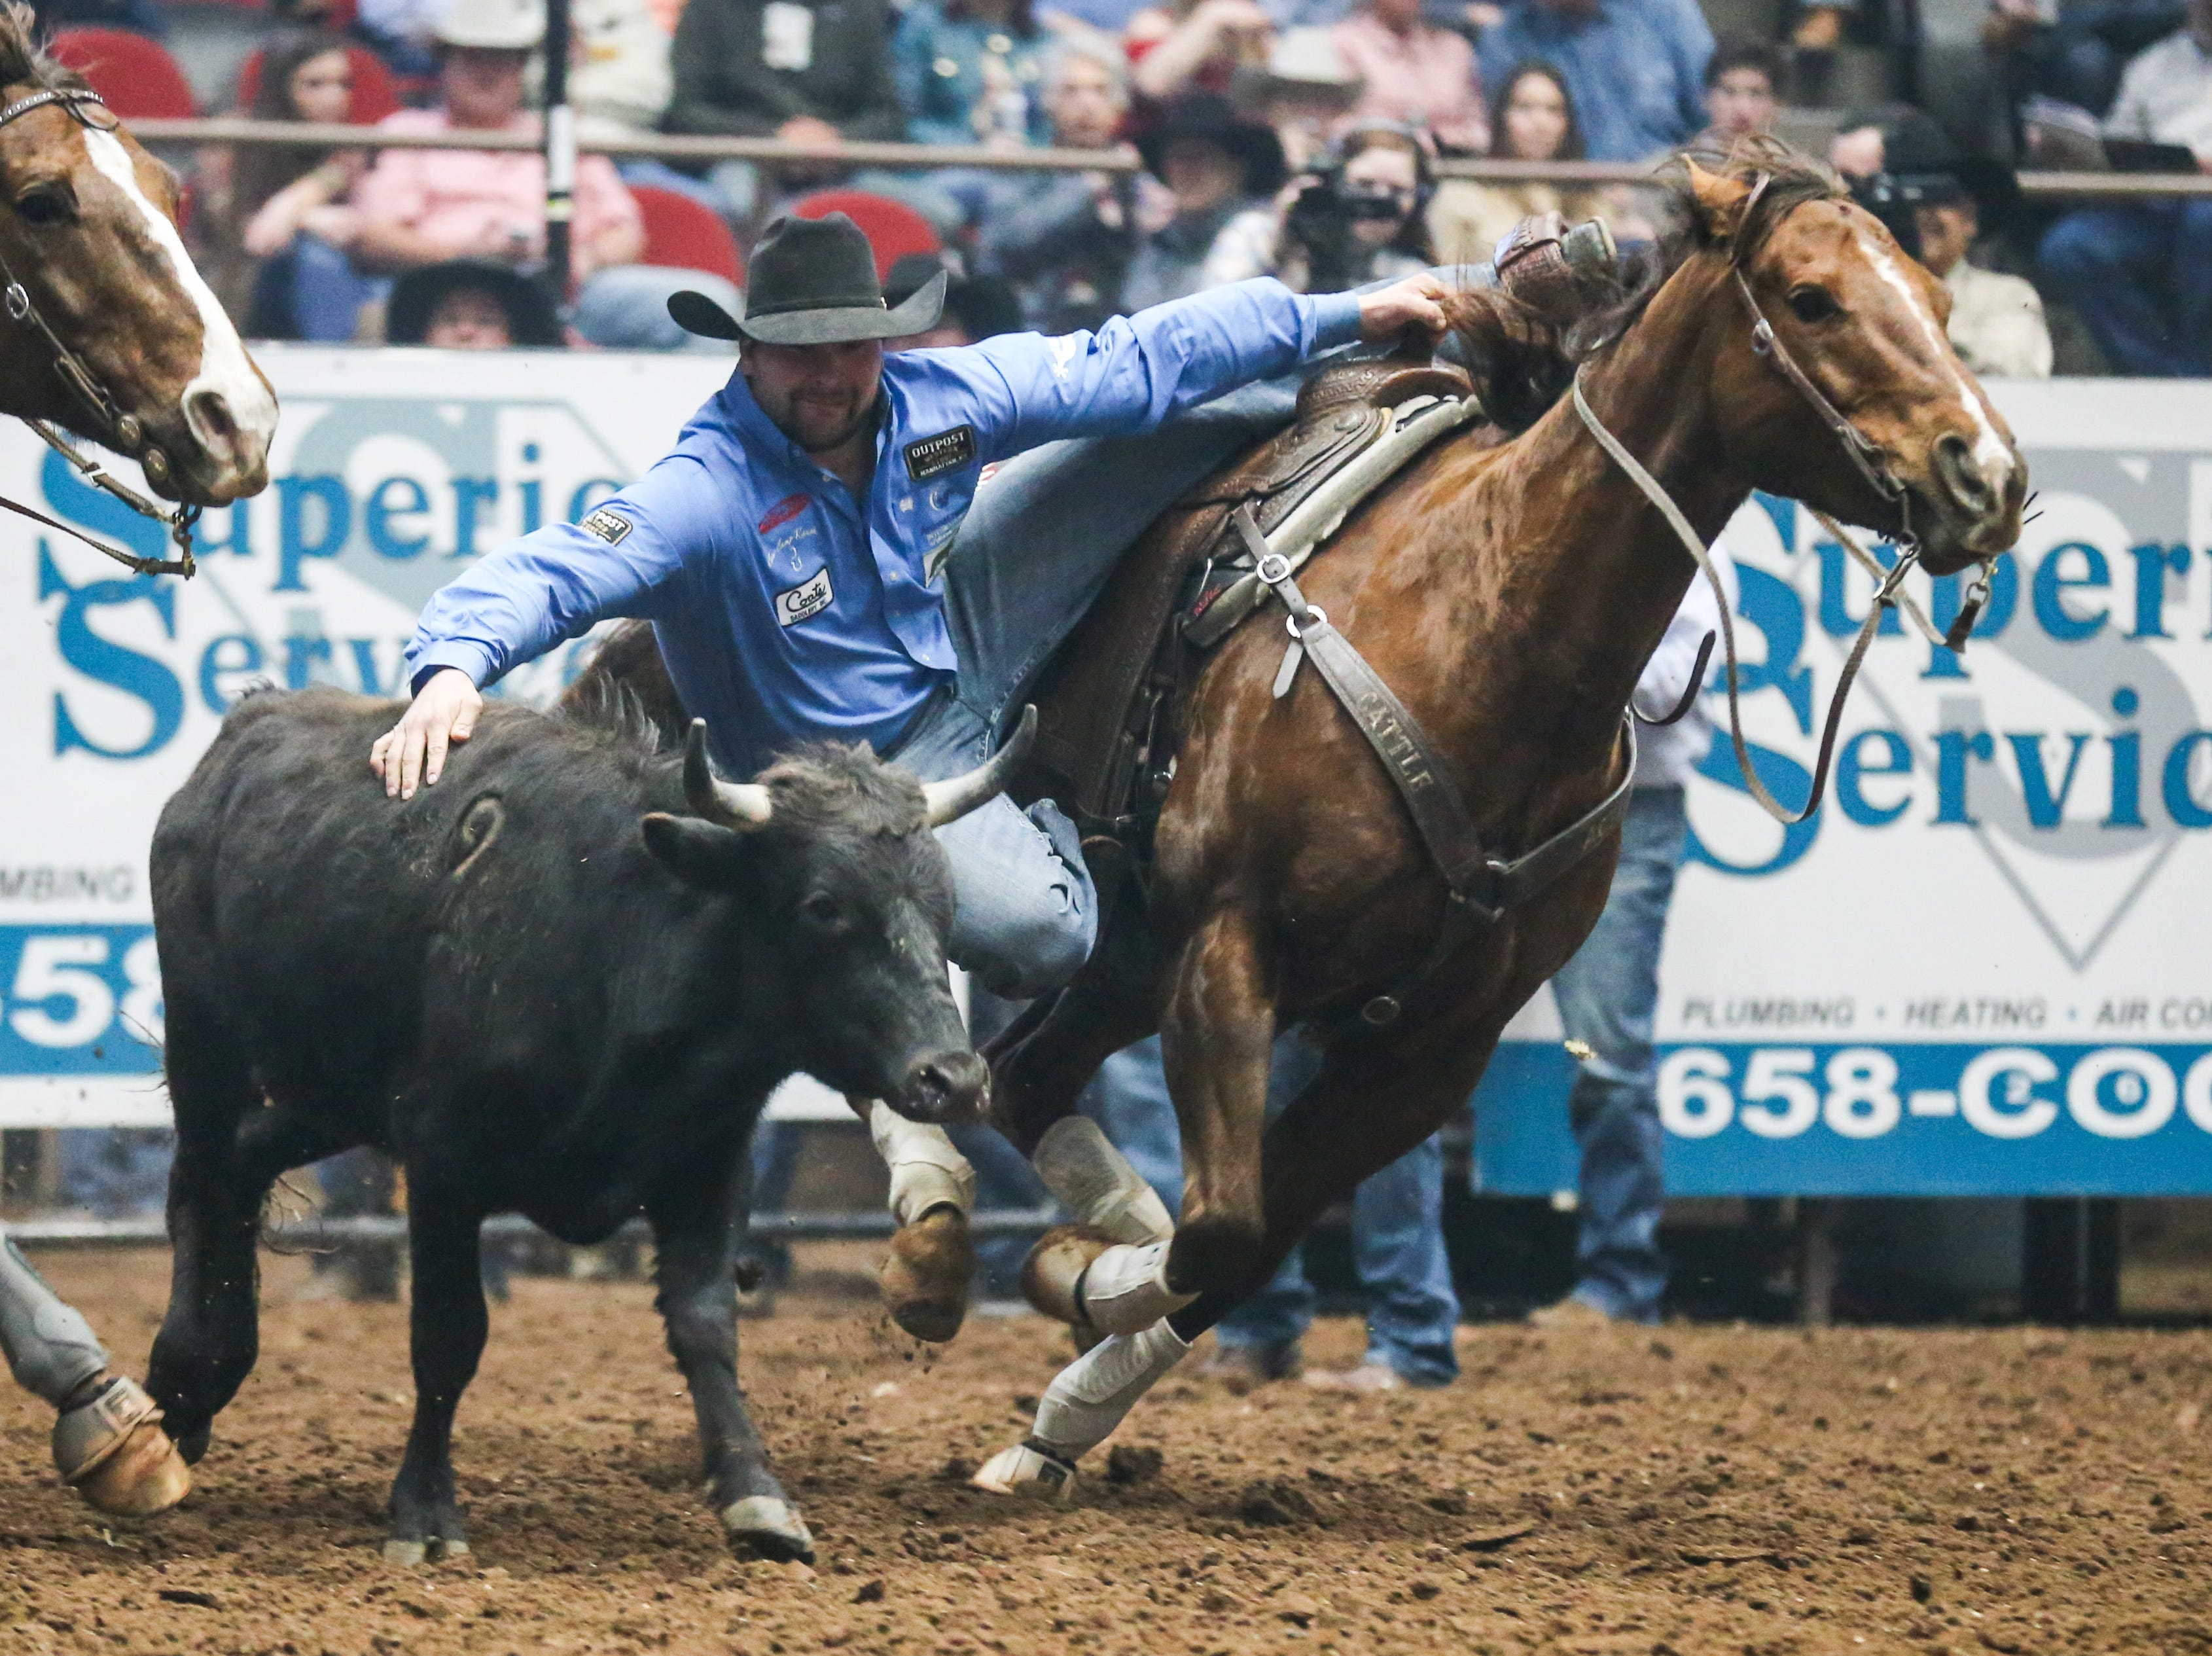 Tanner Brunner rides out to steer wrestle during the 3rd performance of the San Angelo Stock Show & Rodeo Saturday, Feb. 2, 2019, at Foster Communications Coliseum.